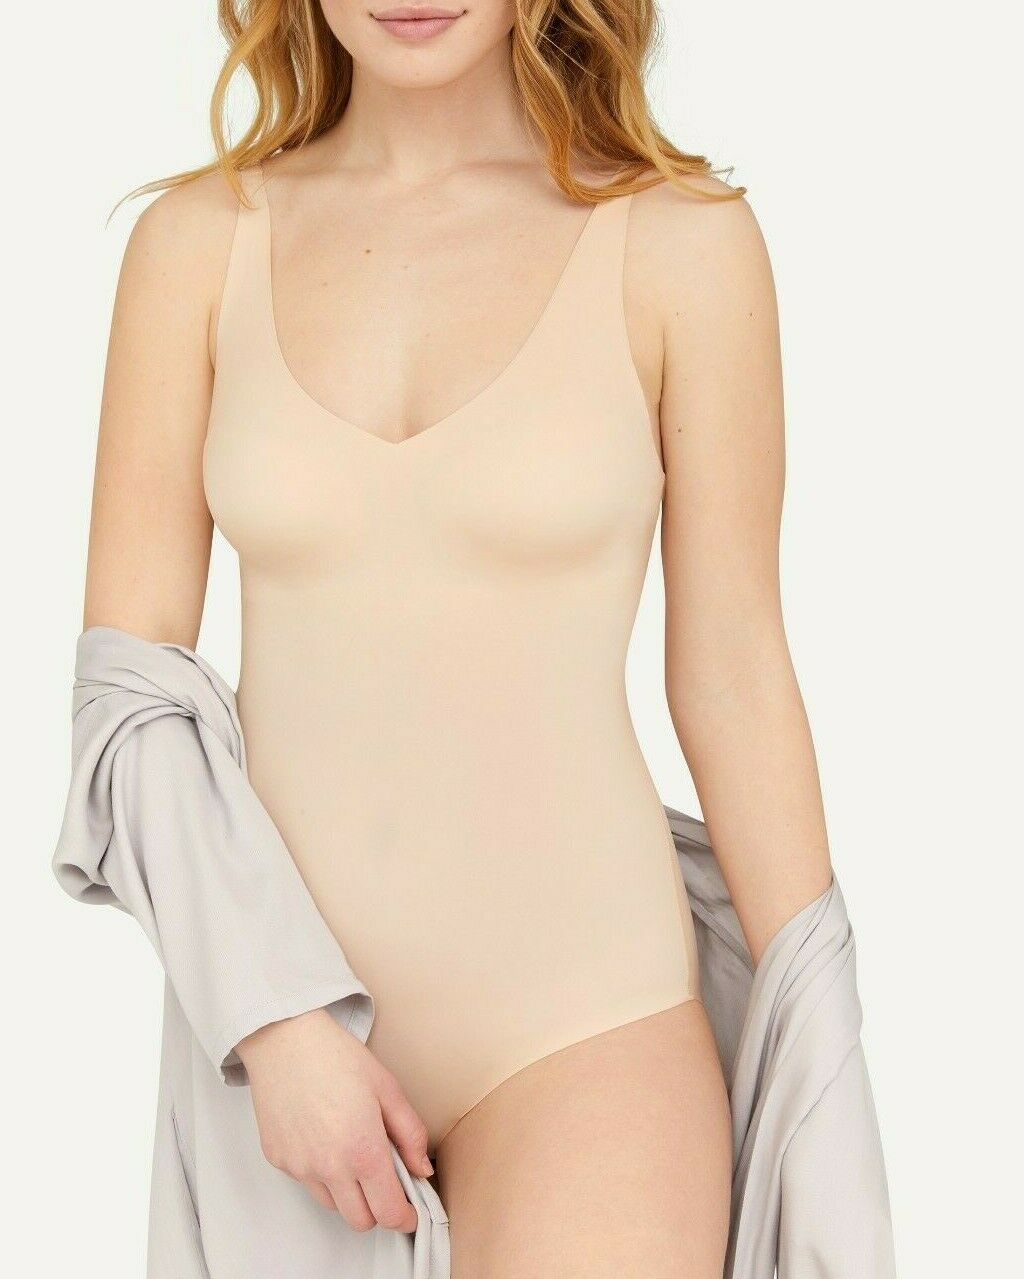 The Feather Bra Shaping Bodysuit